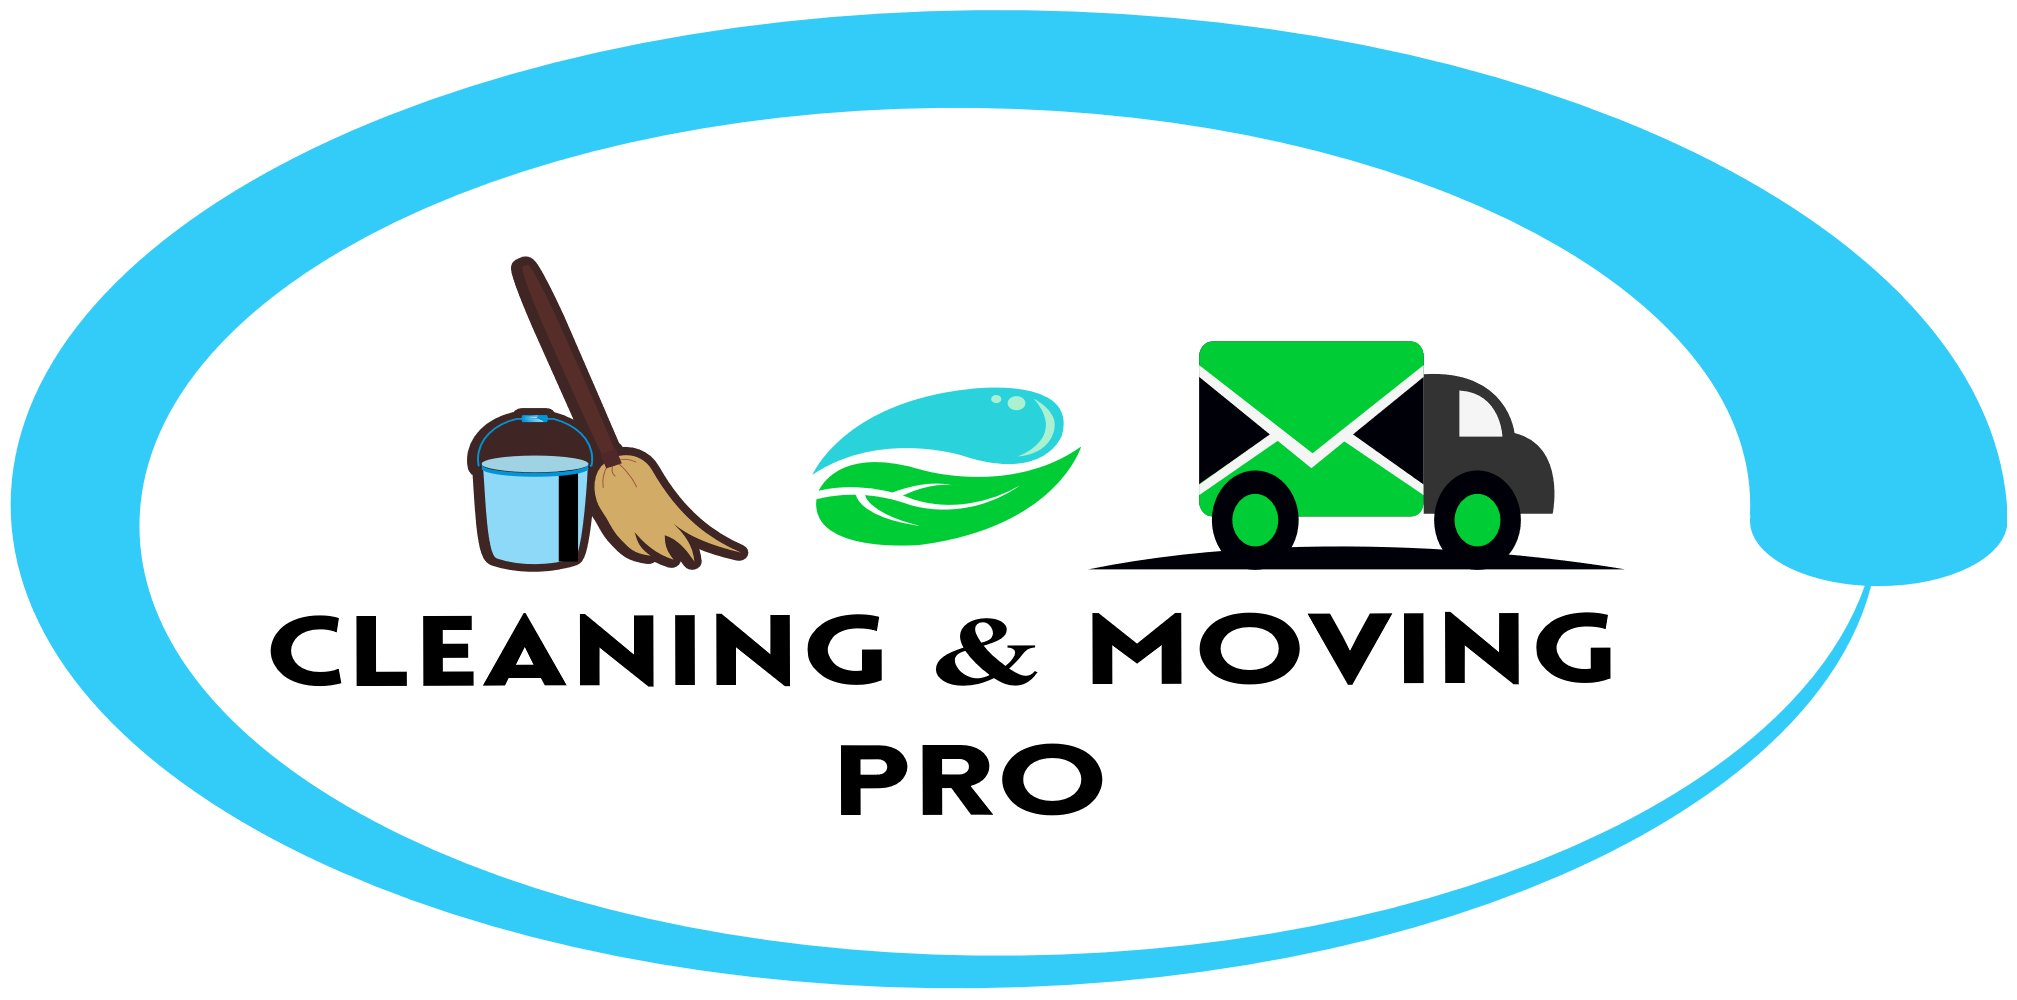 Cleaning And Moving Pro / Professional  Services For Domestic And Commercial Customers / From House And Office Clean To House Removal - Man And Van Services-CLEANING AND MOVING PRO